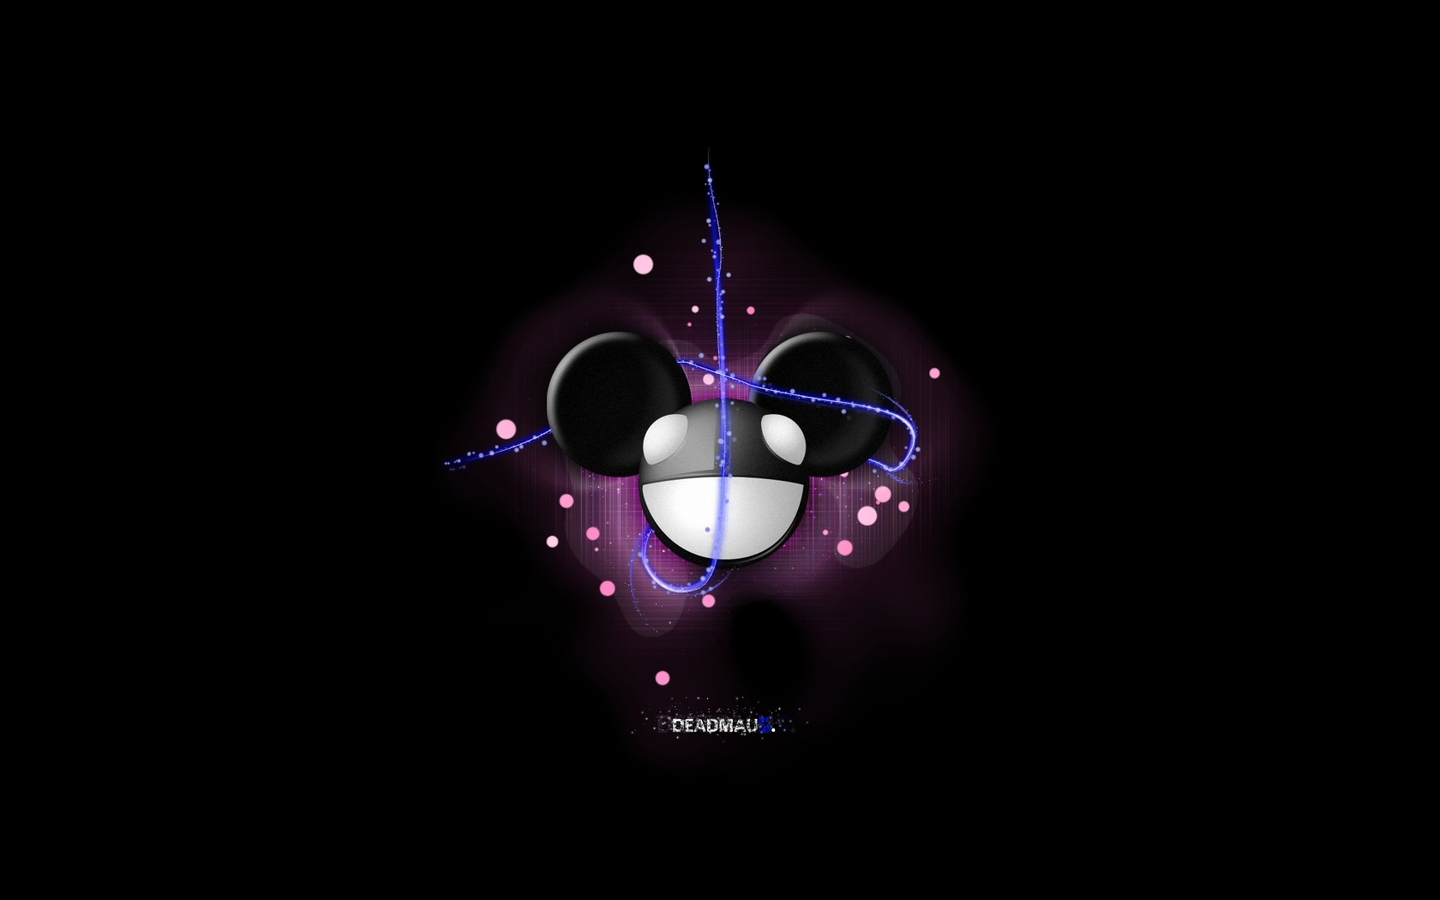 ... Deadmau5 Wallpaper; Deadmau5 Wallpaper HD